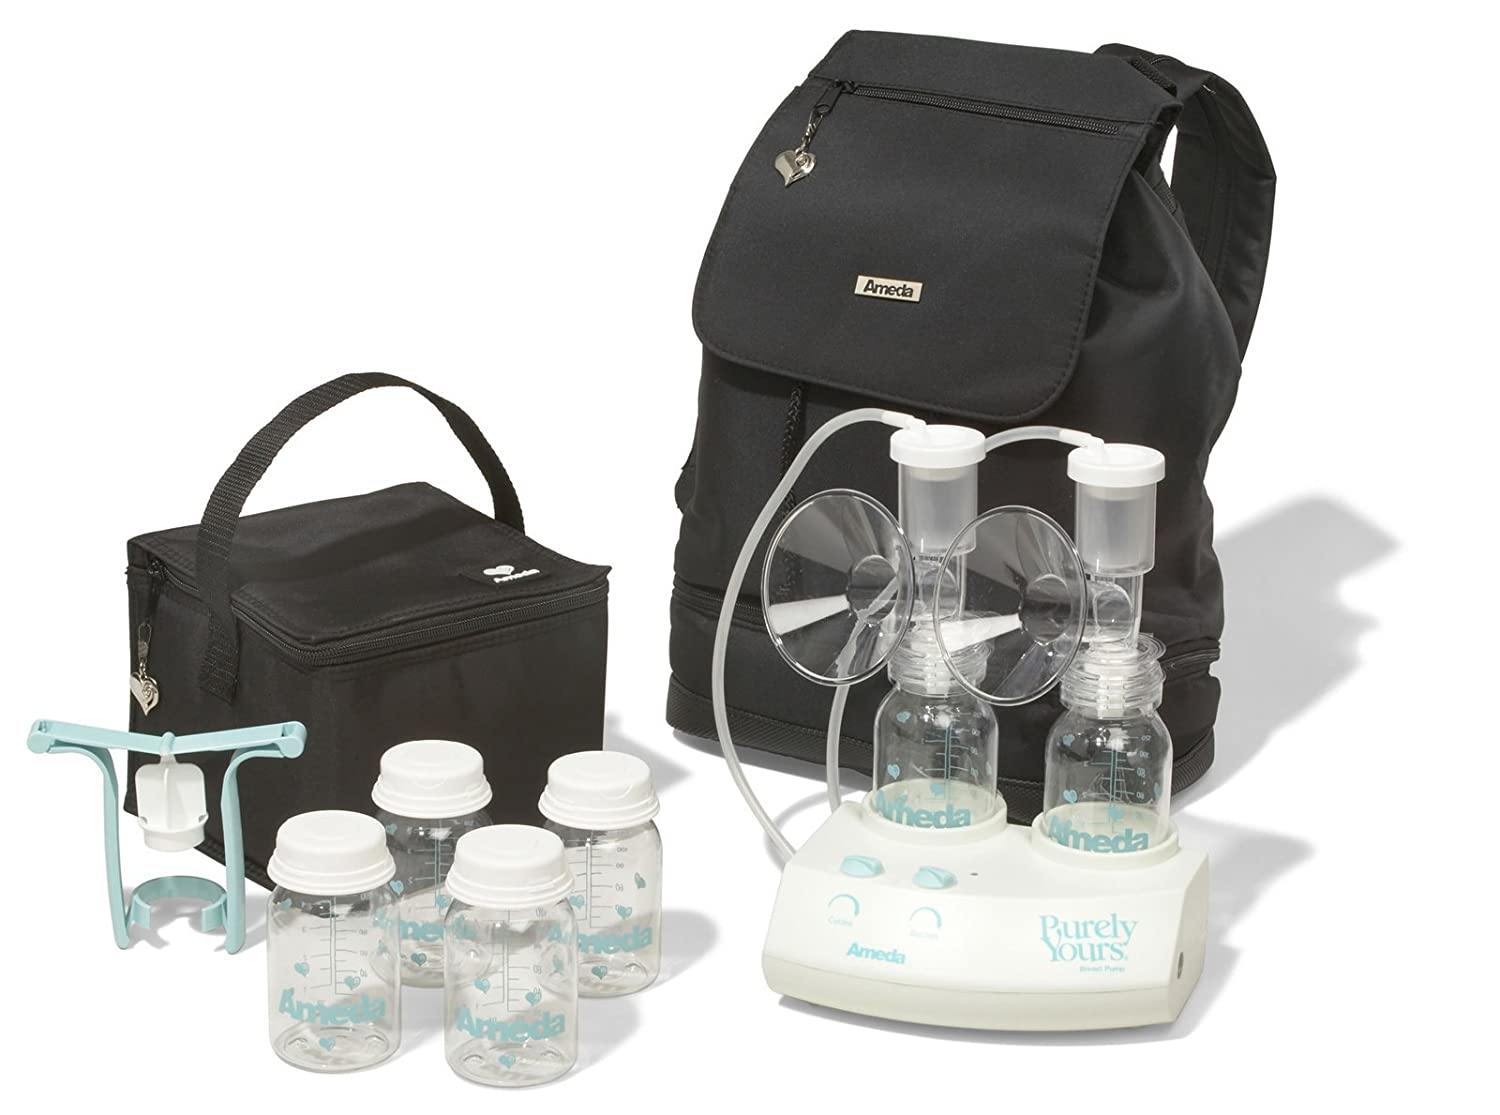 B0007IFUR8 Ameda Purely Yours Carry All Breast Pump Traveler Backpack 71ilRkpfnCL._SL1500_